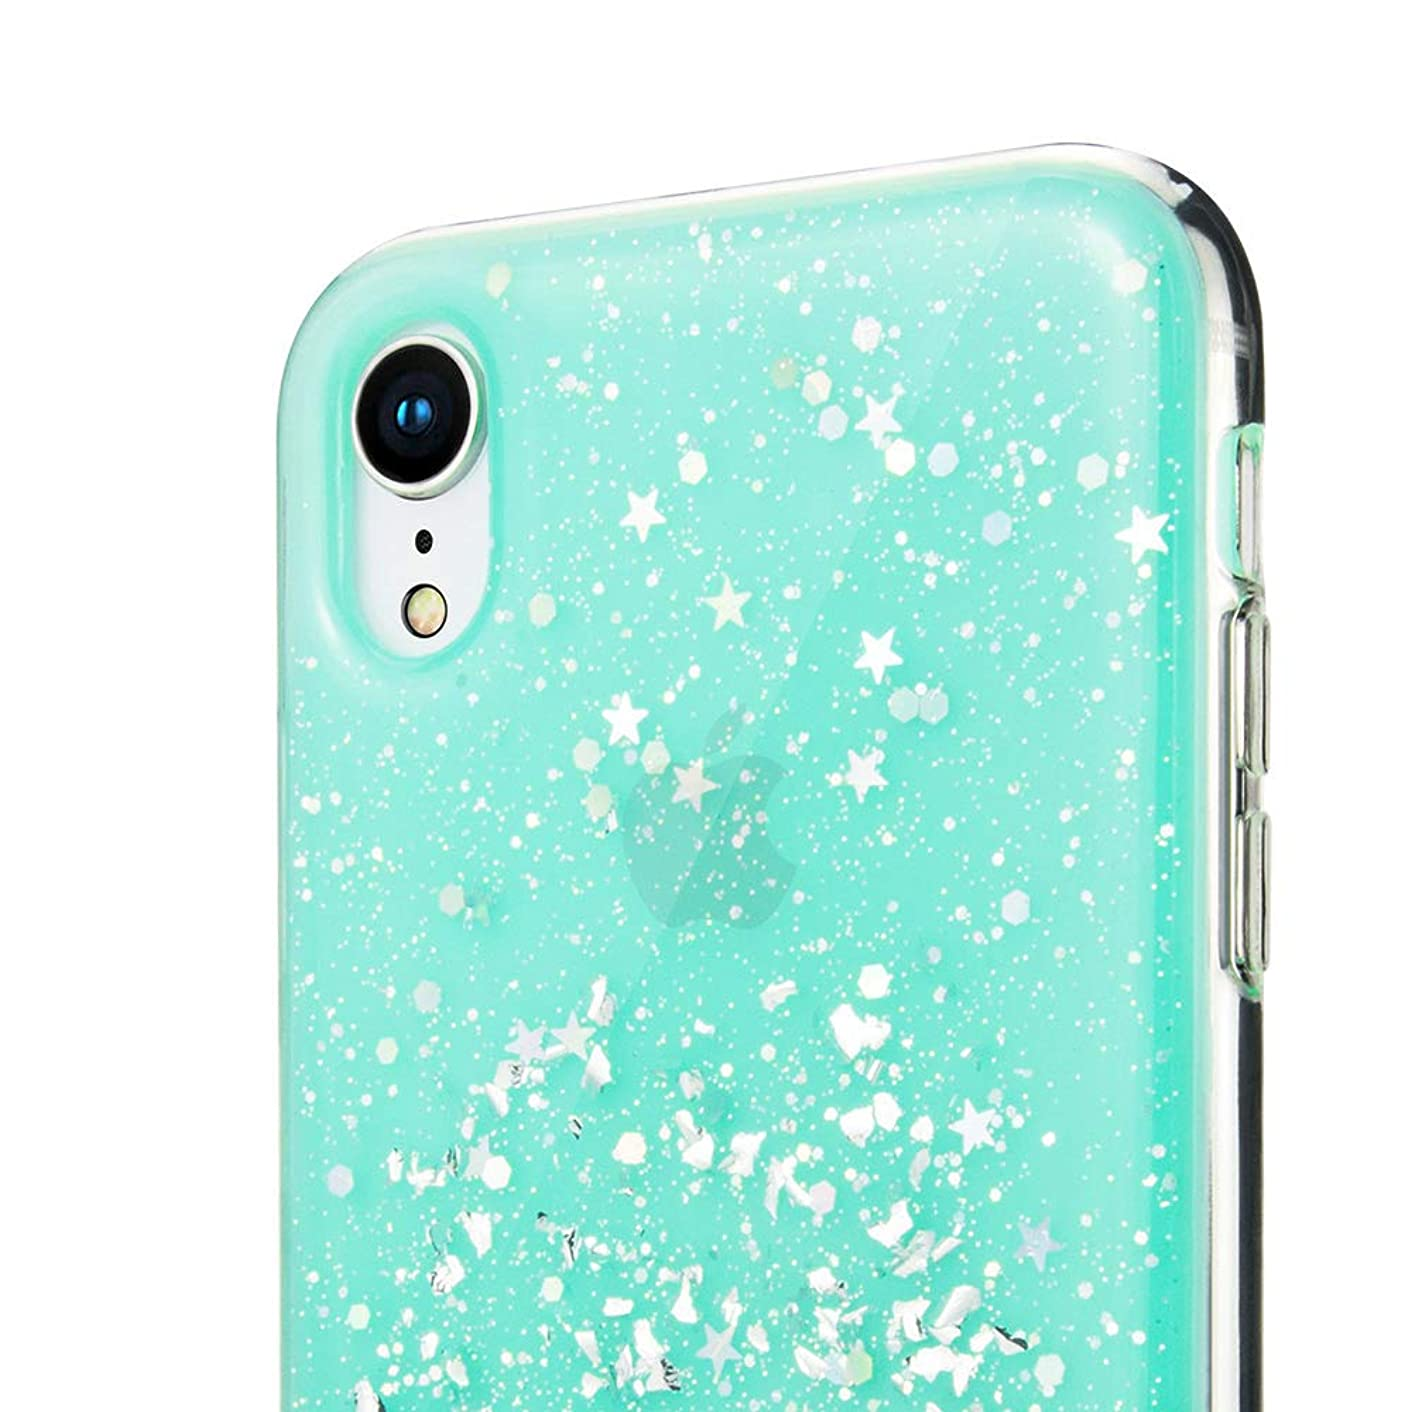 iPhone Xs Max 6.5 Case, SwitchEasy [Starfield] Luxury Fashion Glitter Hard Case for iPhone Xs Max 2018, Transparent Clear Mobile Phone Shiny Bling Sparkling Protective Cover (Mint, Xs Max)